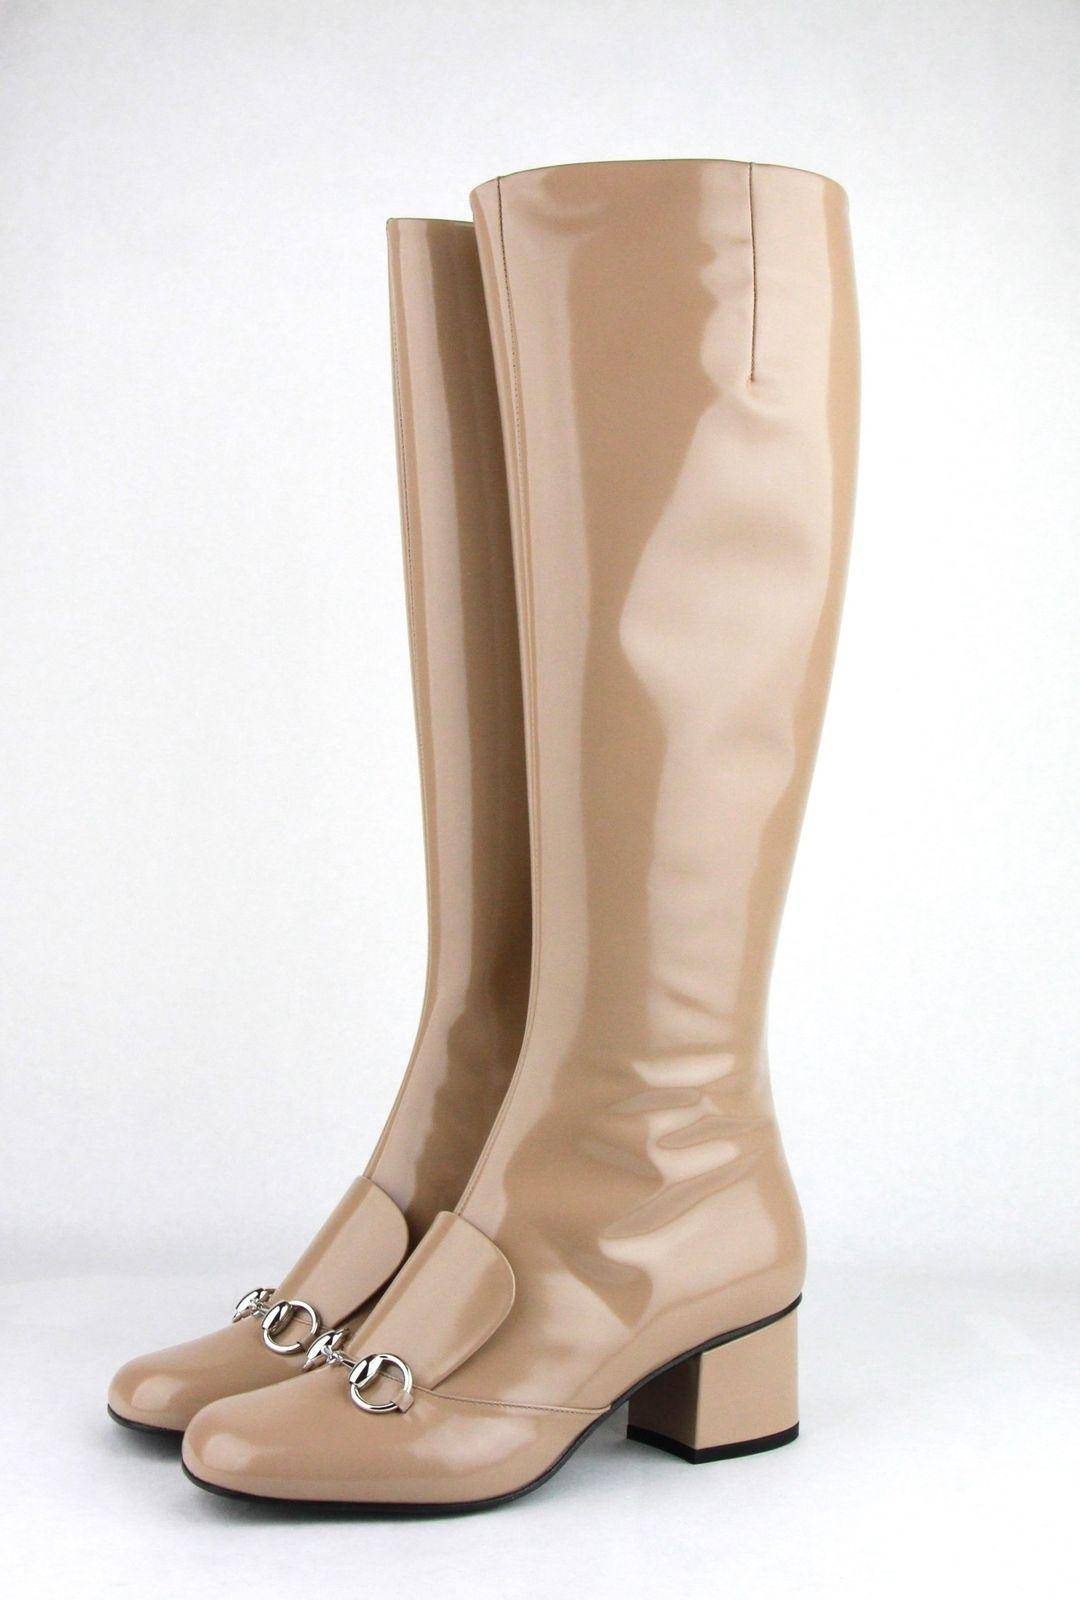 Gucci Camel Patent Leather Knee Silver Horsebit 7 362949